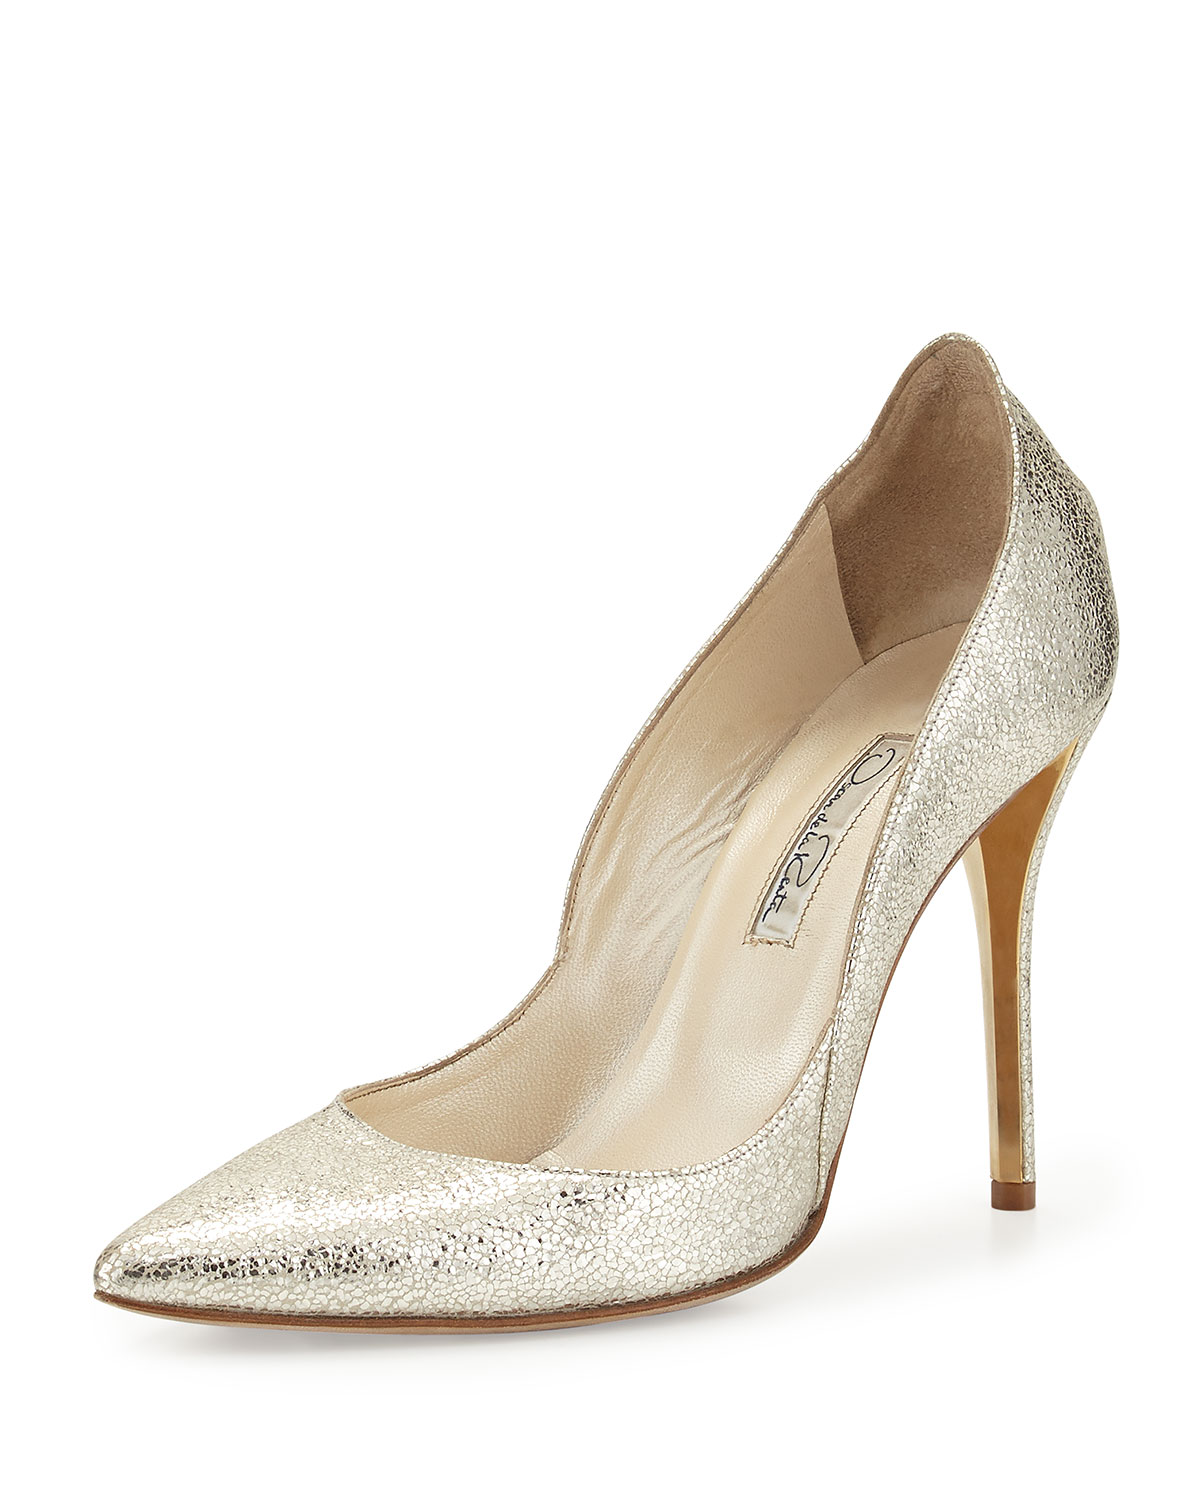 391c5d0fd02a Oscar de la Renta Crinkled Metallic Leather Pump